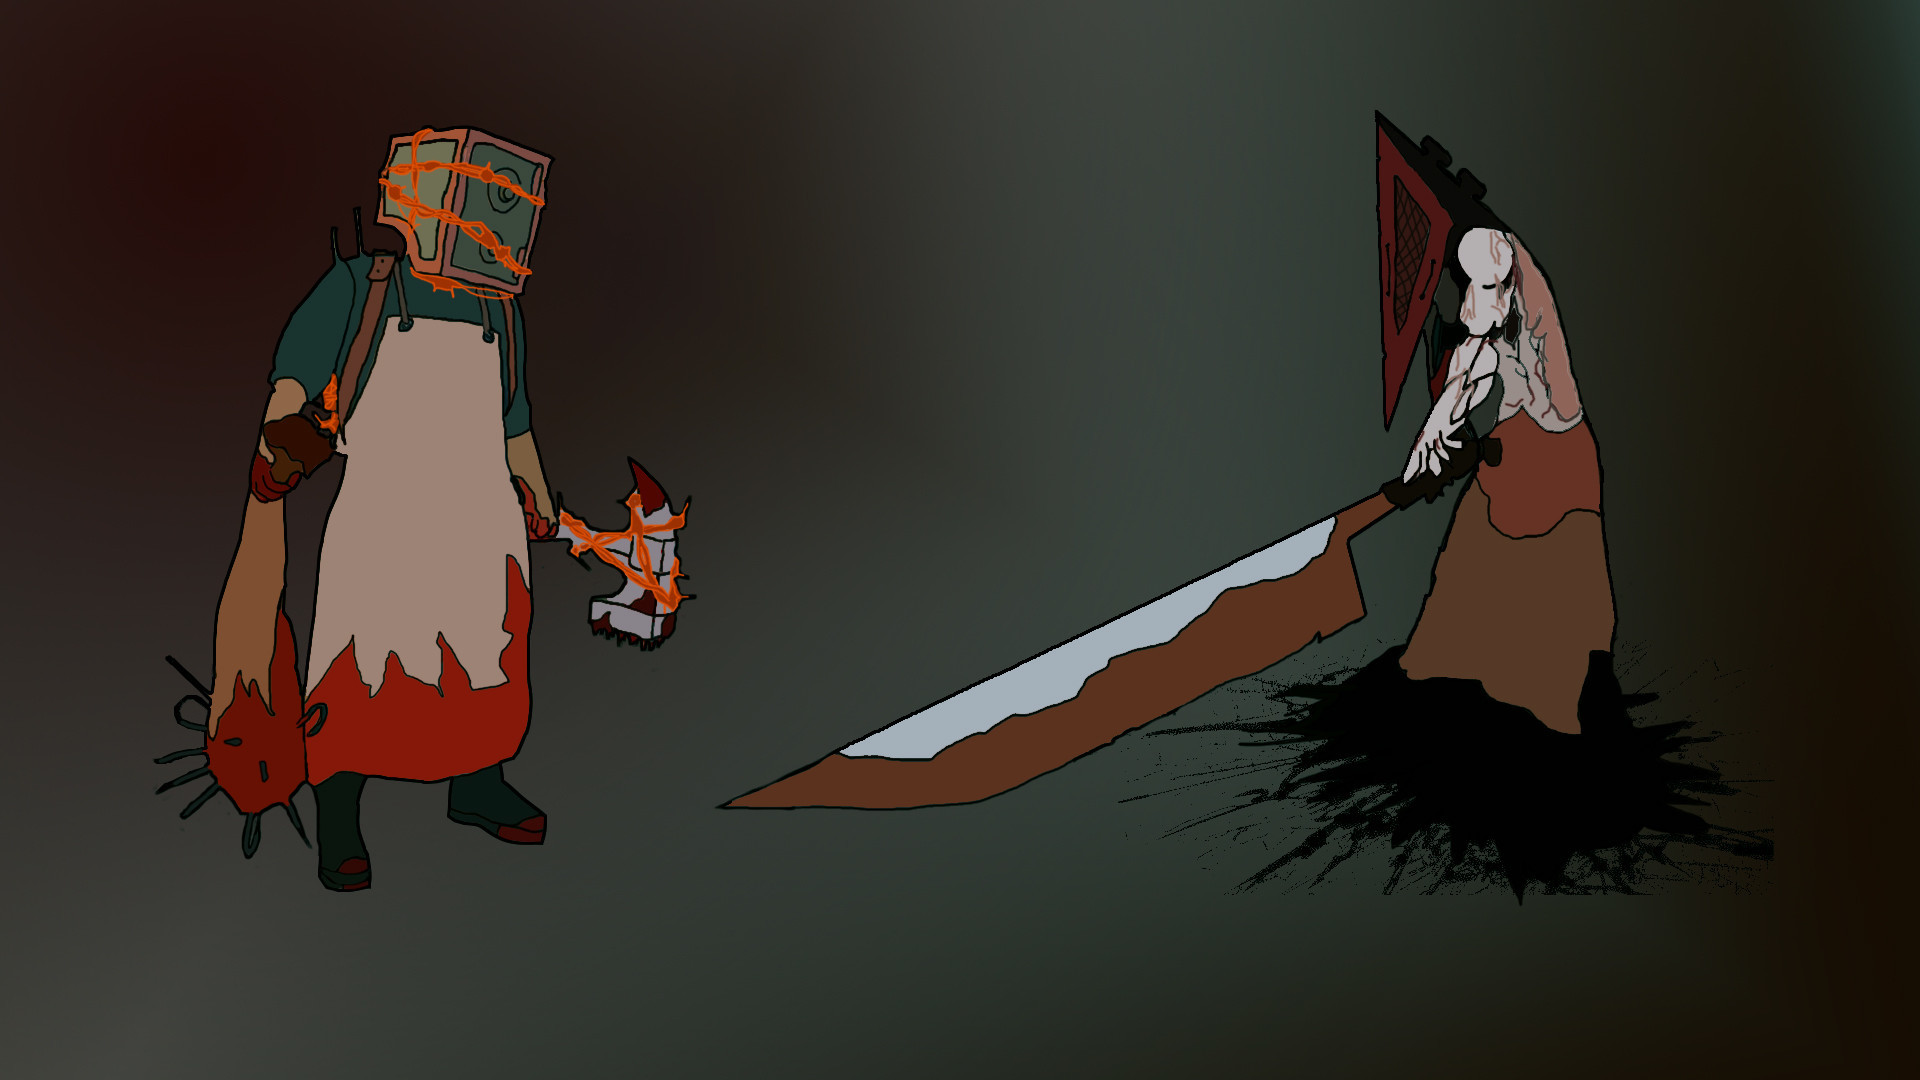 Silent Hill Pyramid Head Wallpaper (72+ Images